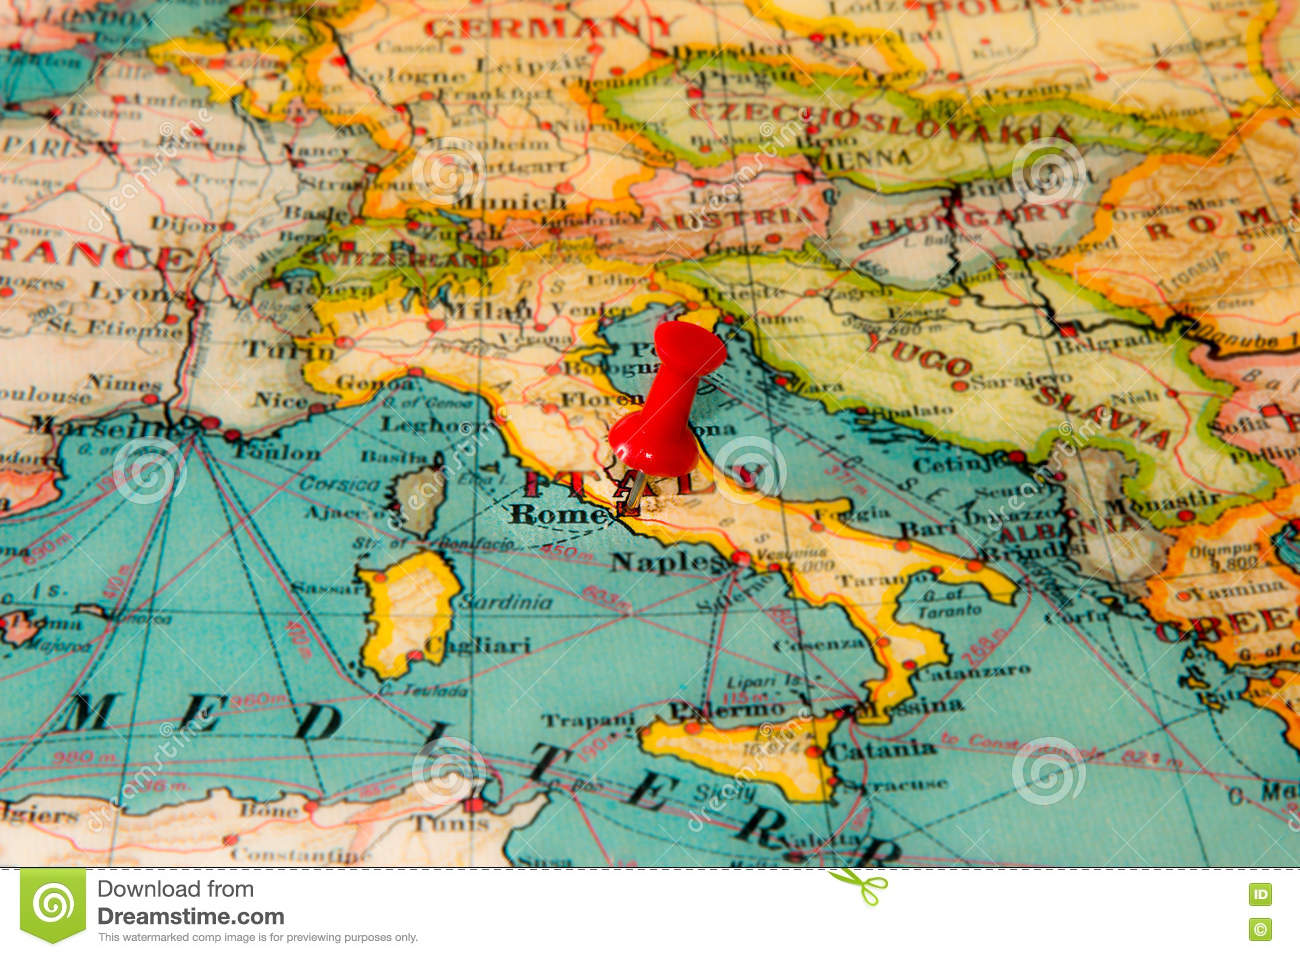 Rome, Italy Pinned On Vintage Map Of Europe Stock Photo ...